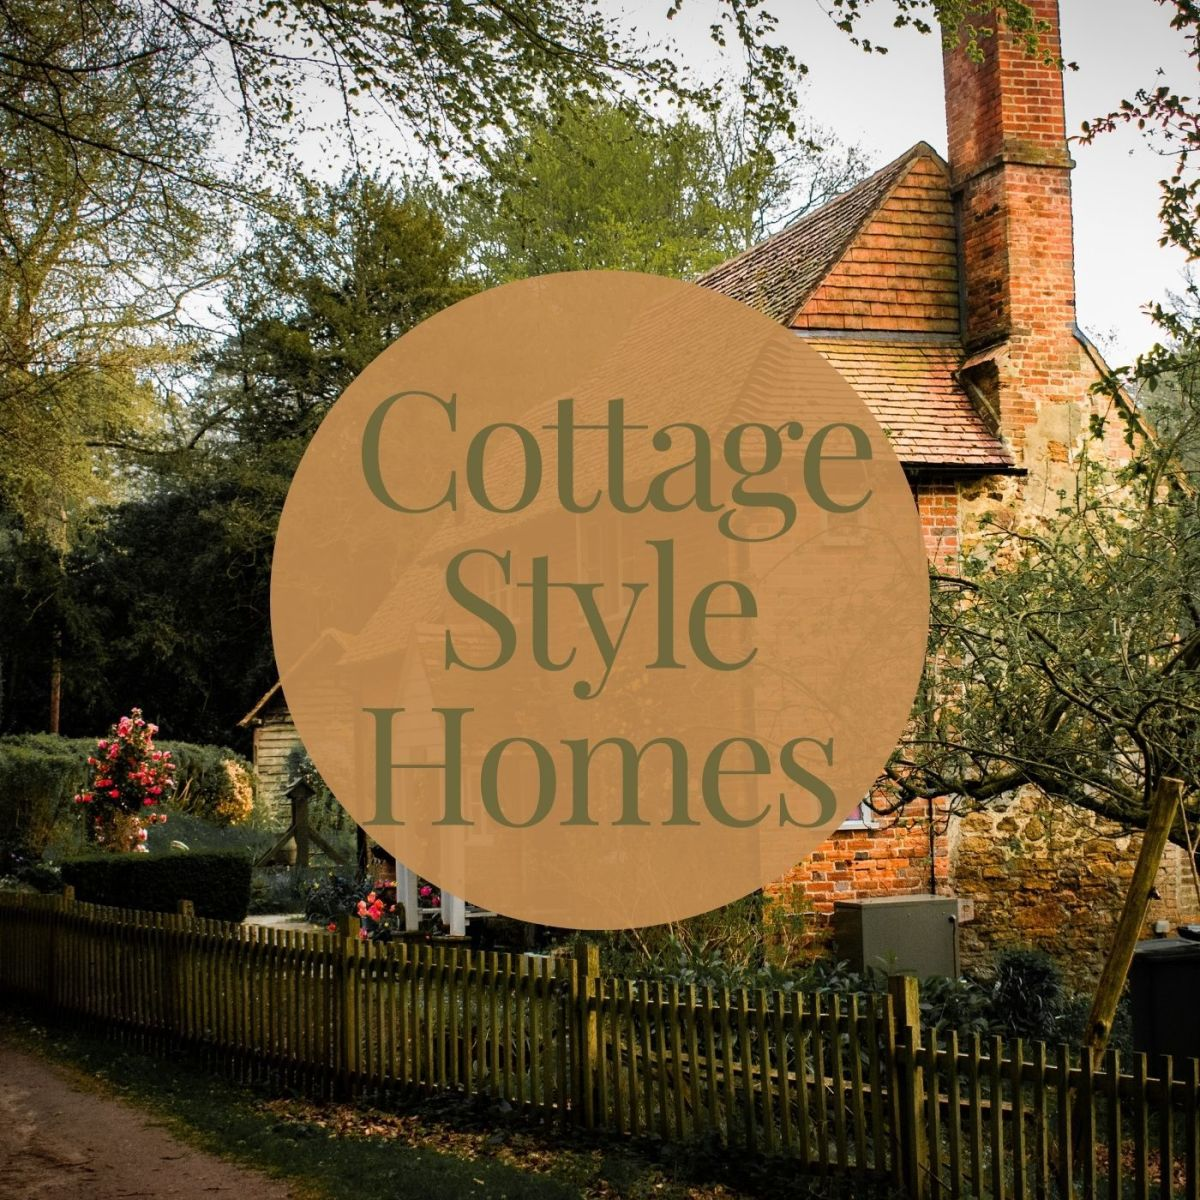 Cottage style is casual, cozy, comfortable, and charming.